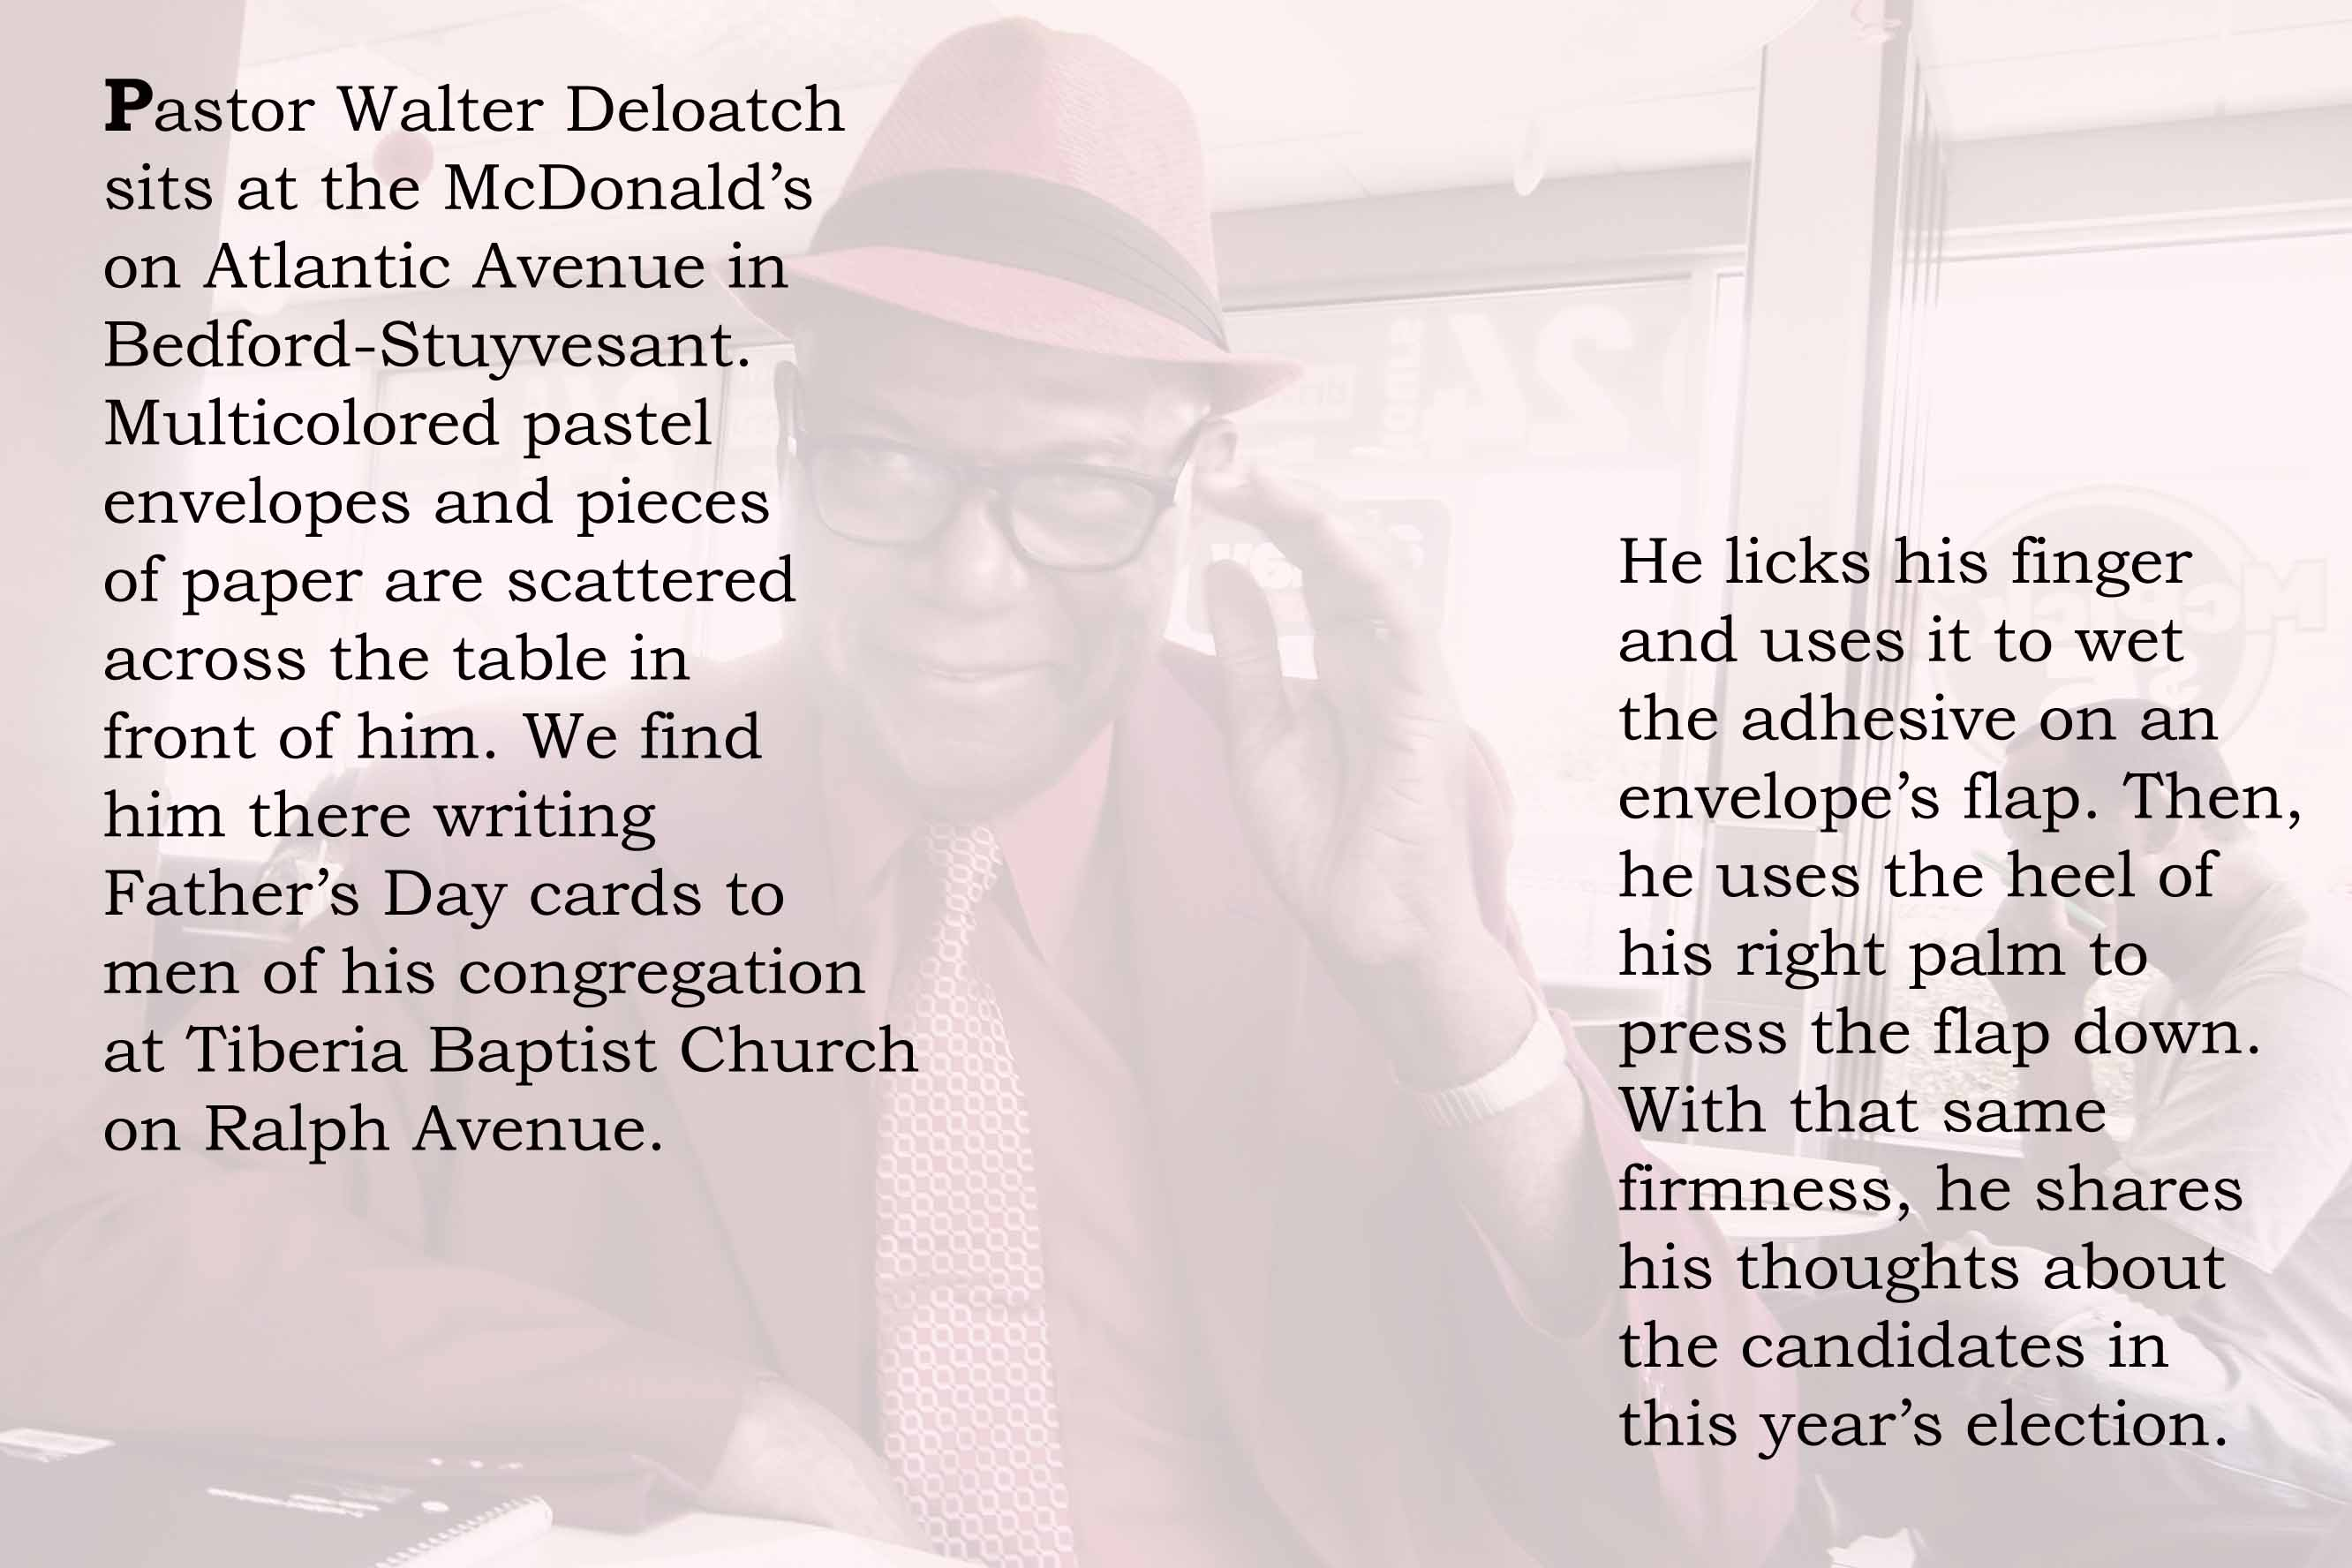 Pastor Walter DeLoatch sits at the McDonald's on Atlantic Avenue in Bedford-Stuyvesant.